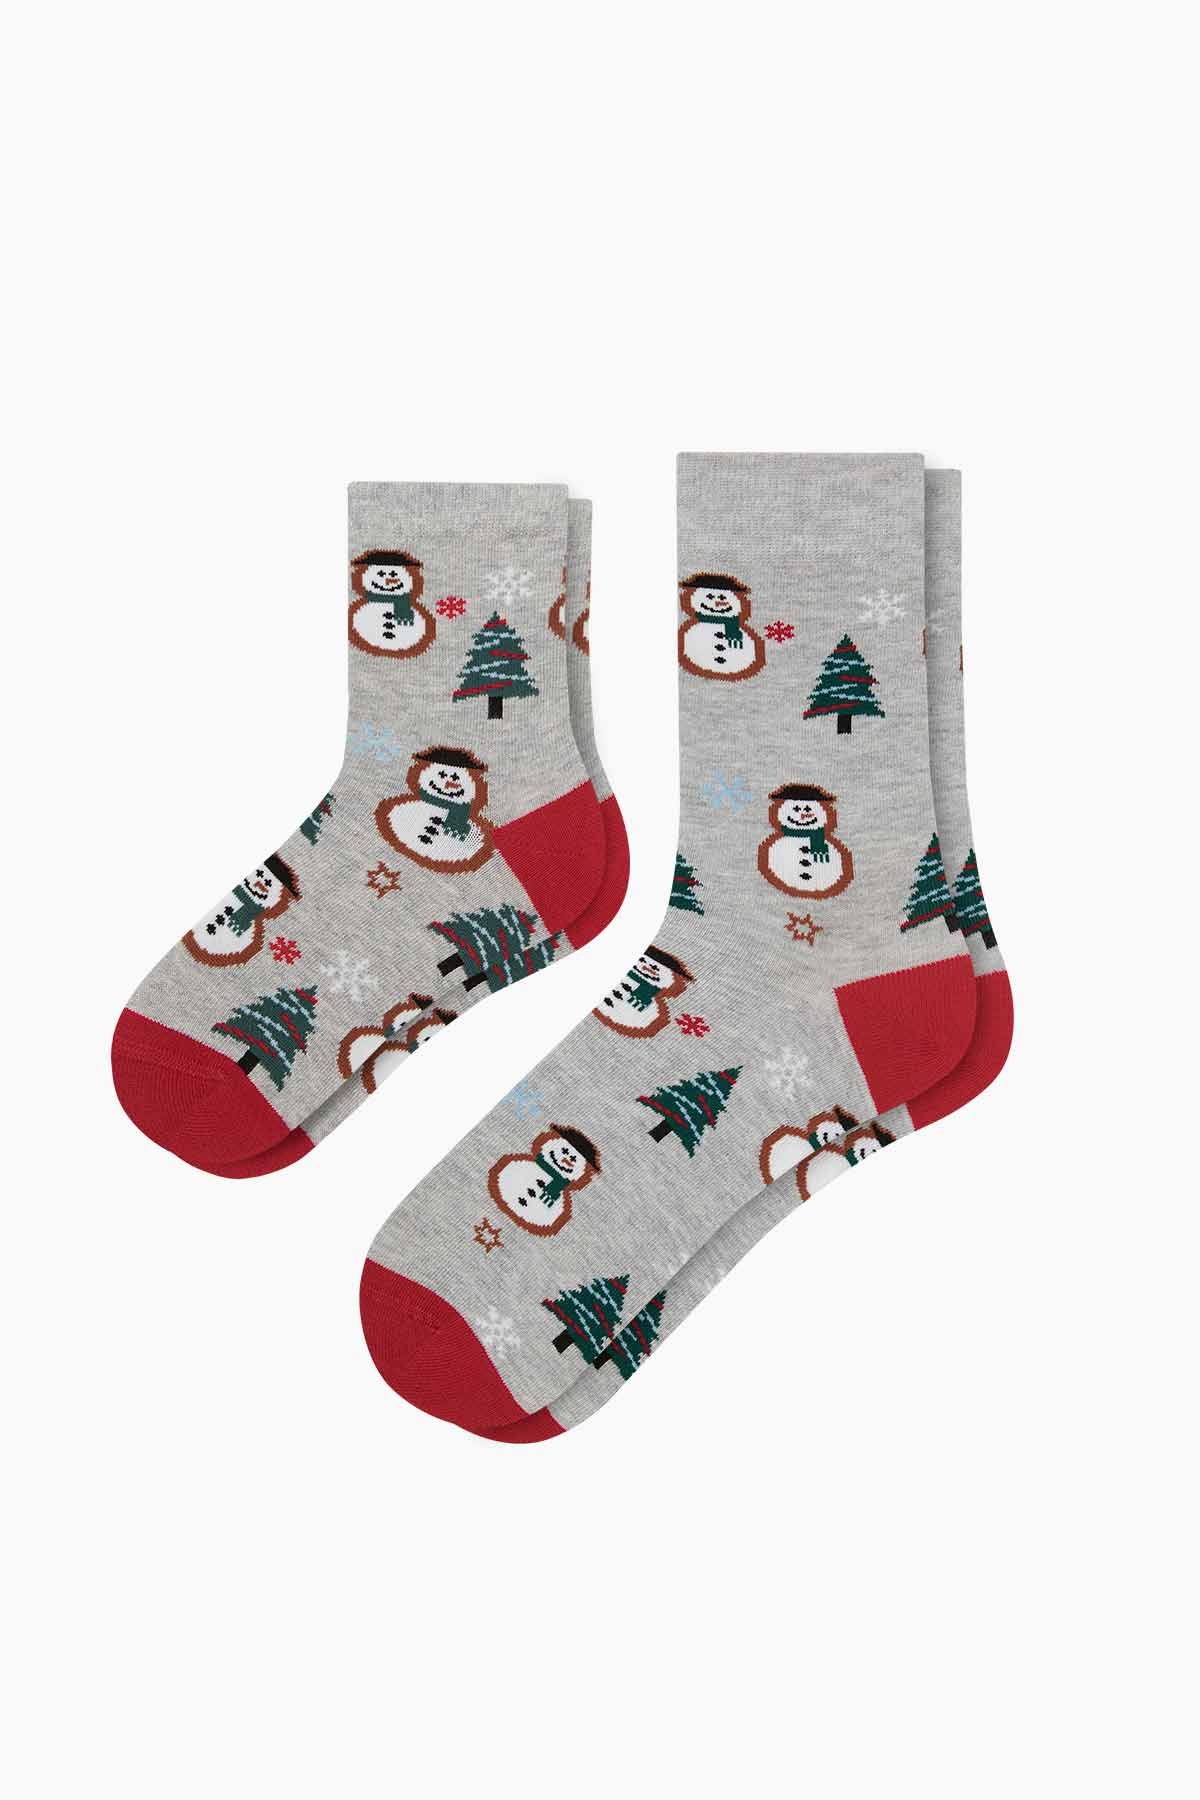 Bross - 2-Pack Snow Man Patterned Father Child Socks